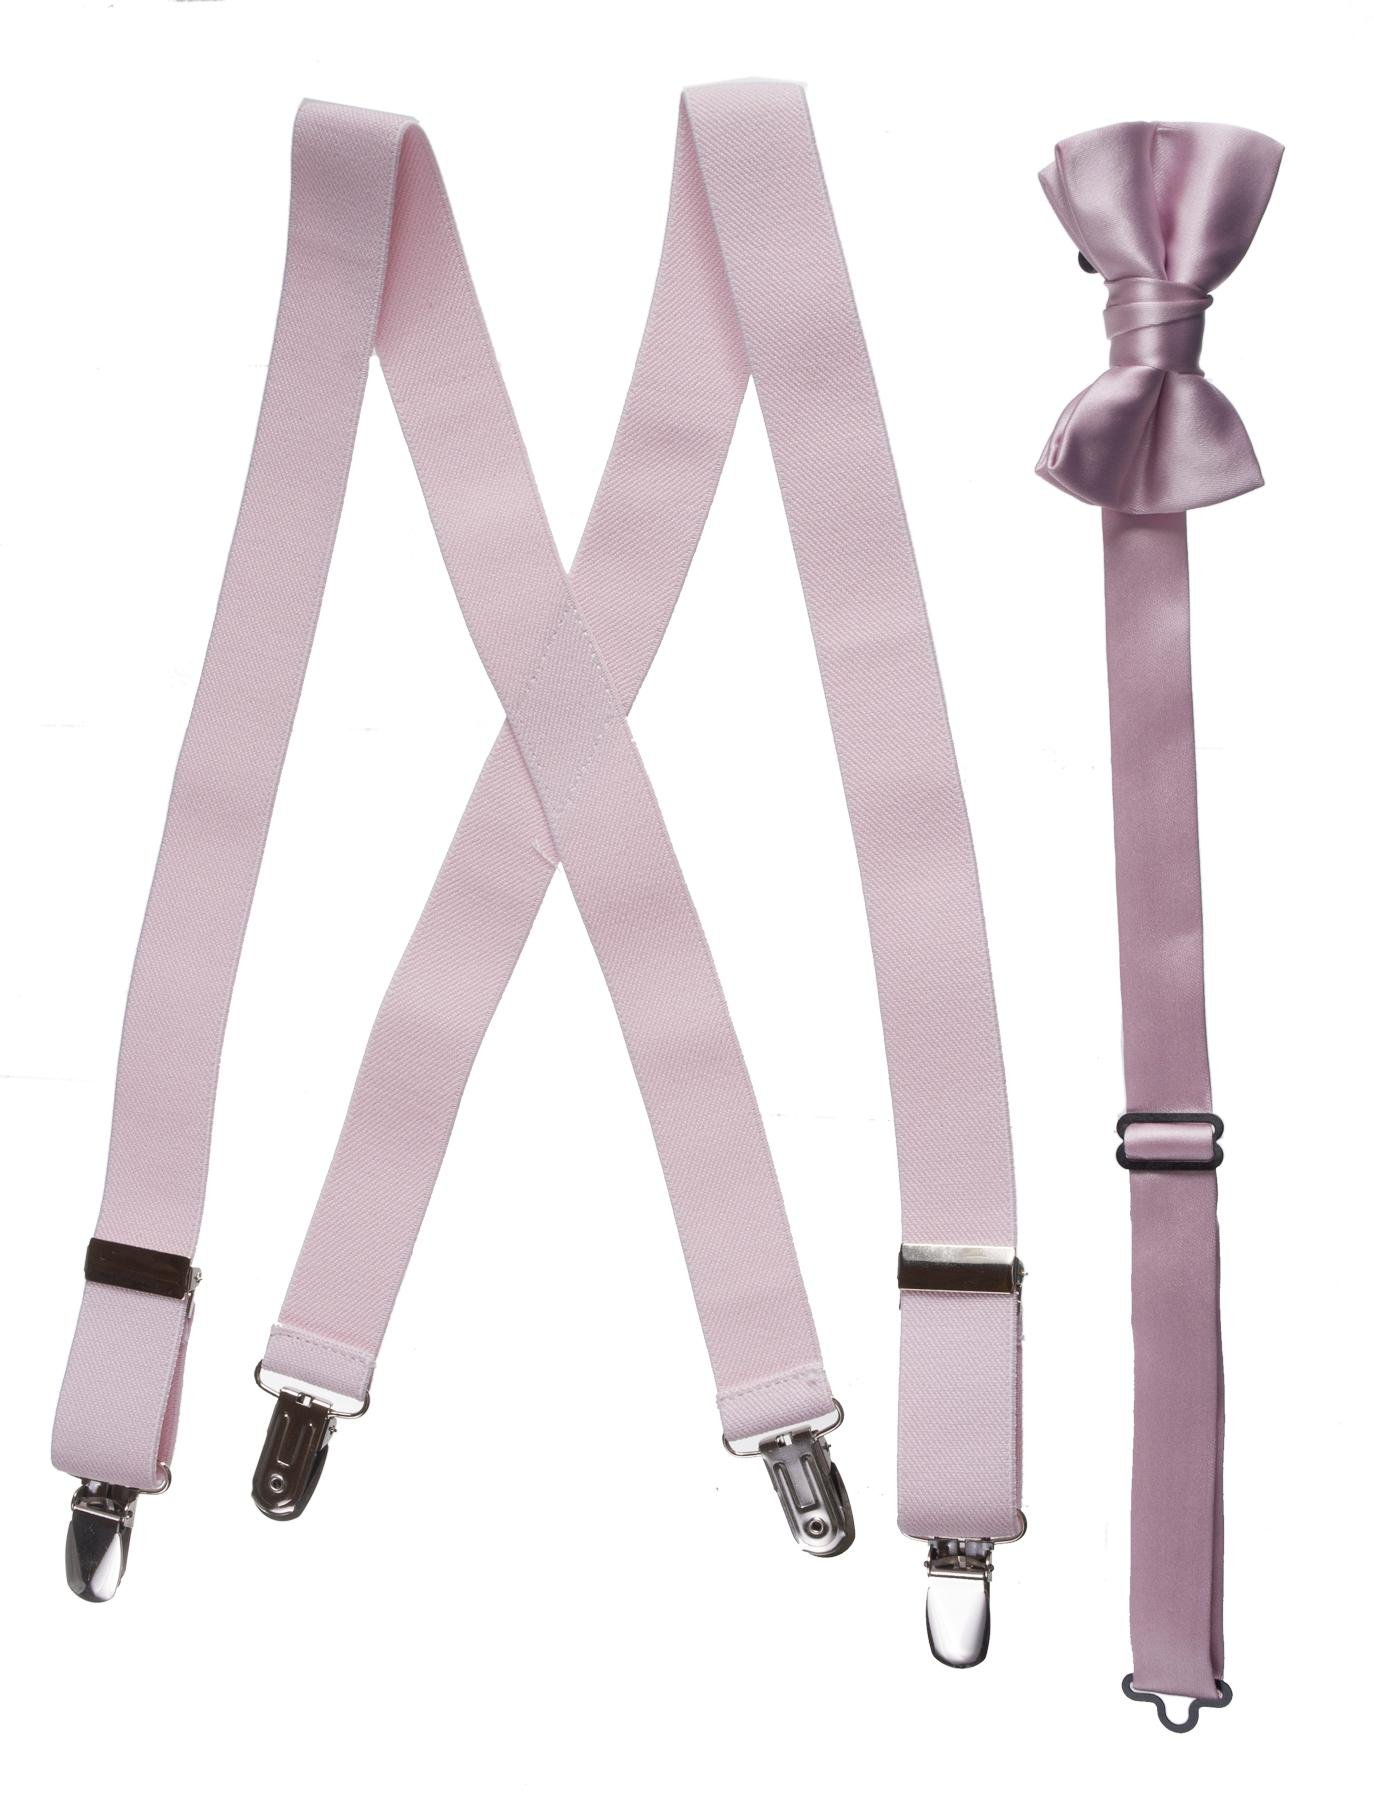 Matching Blush Pink Adjustable Suspender and Bow Tie Sets, Kids to Adults Sizing (Boys 30'' (Ages 6-10)))